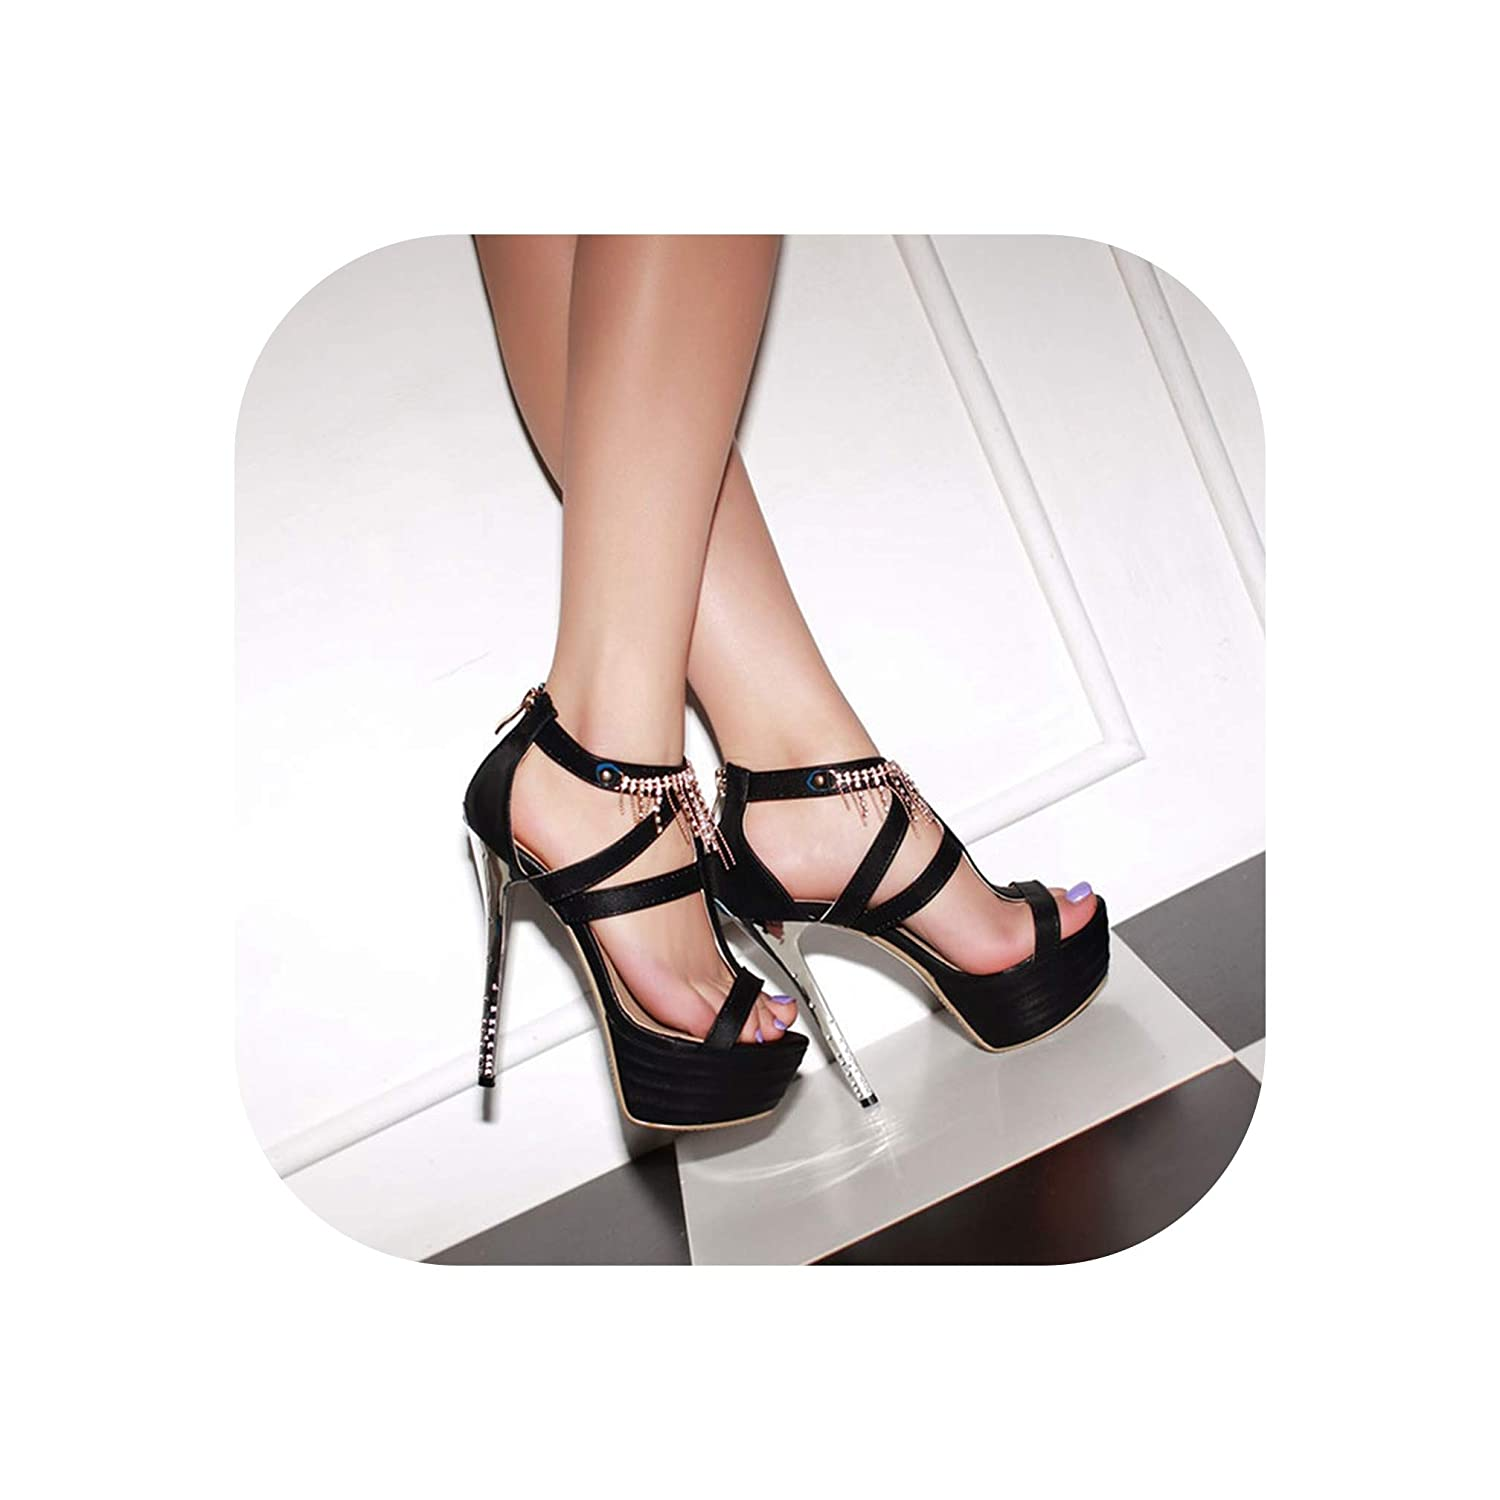 Black Stiletto Sandals Sexy Platform shoes Nightclub Party Dance shoes